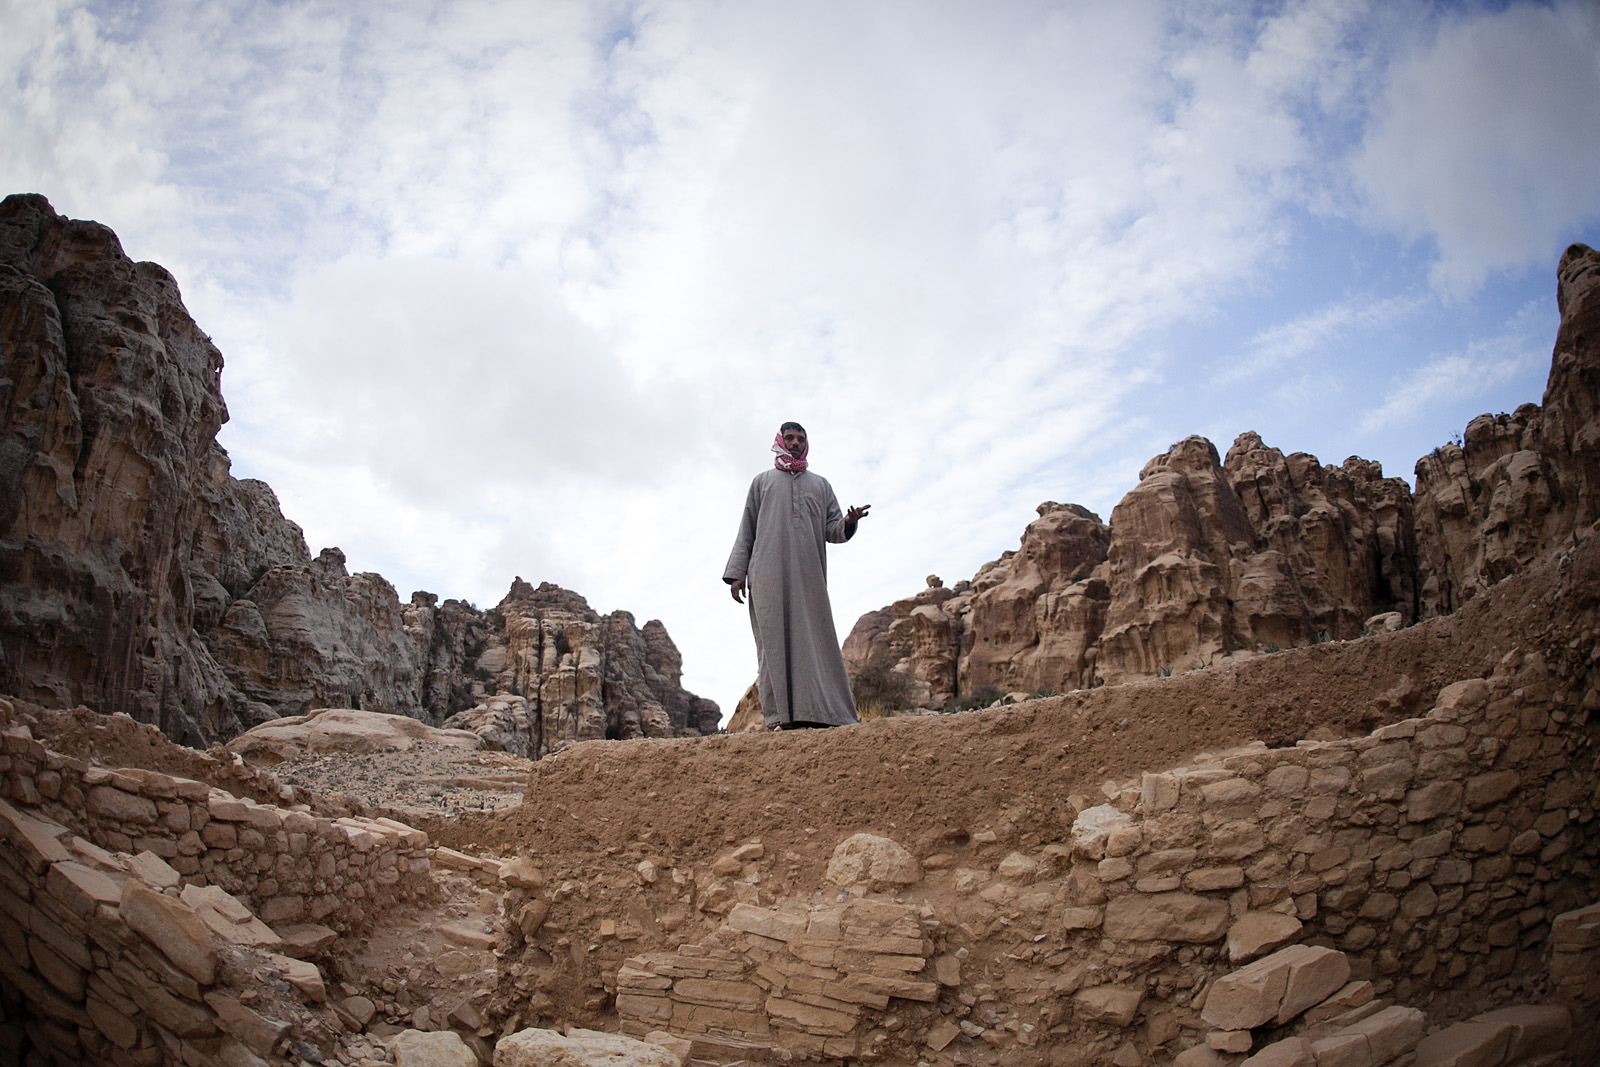 Our guide shows us ancient ruins at the top of a mountain near Little Petra.